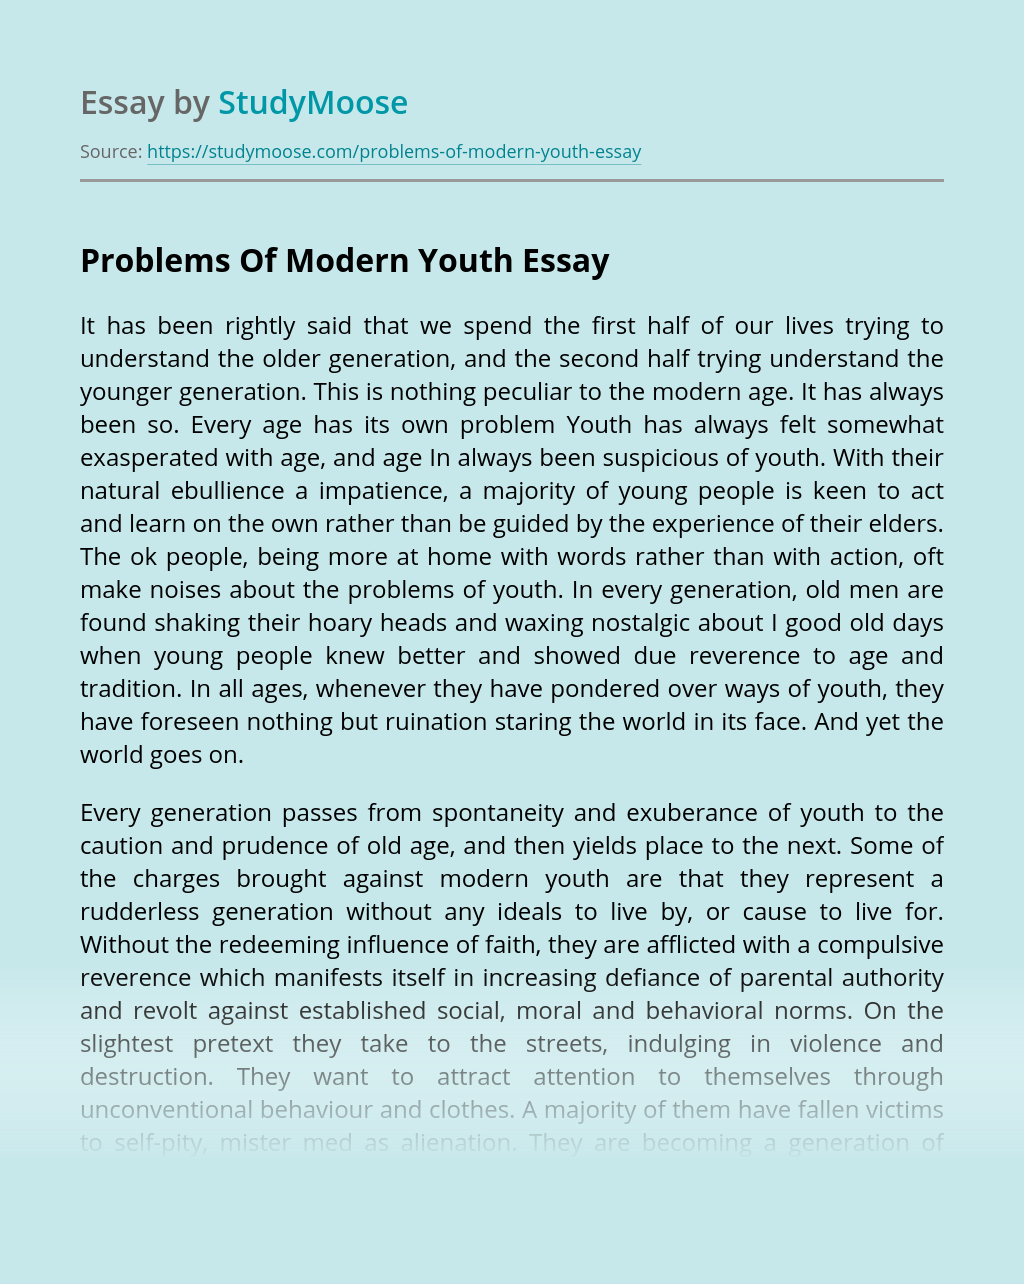 Problems Of Modern Youth